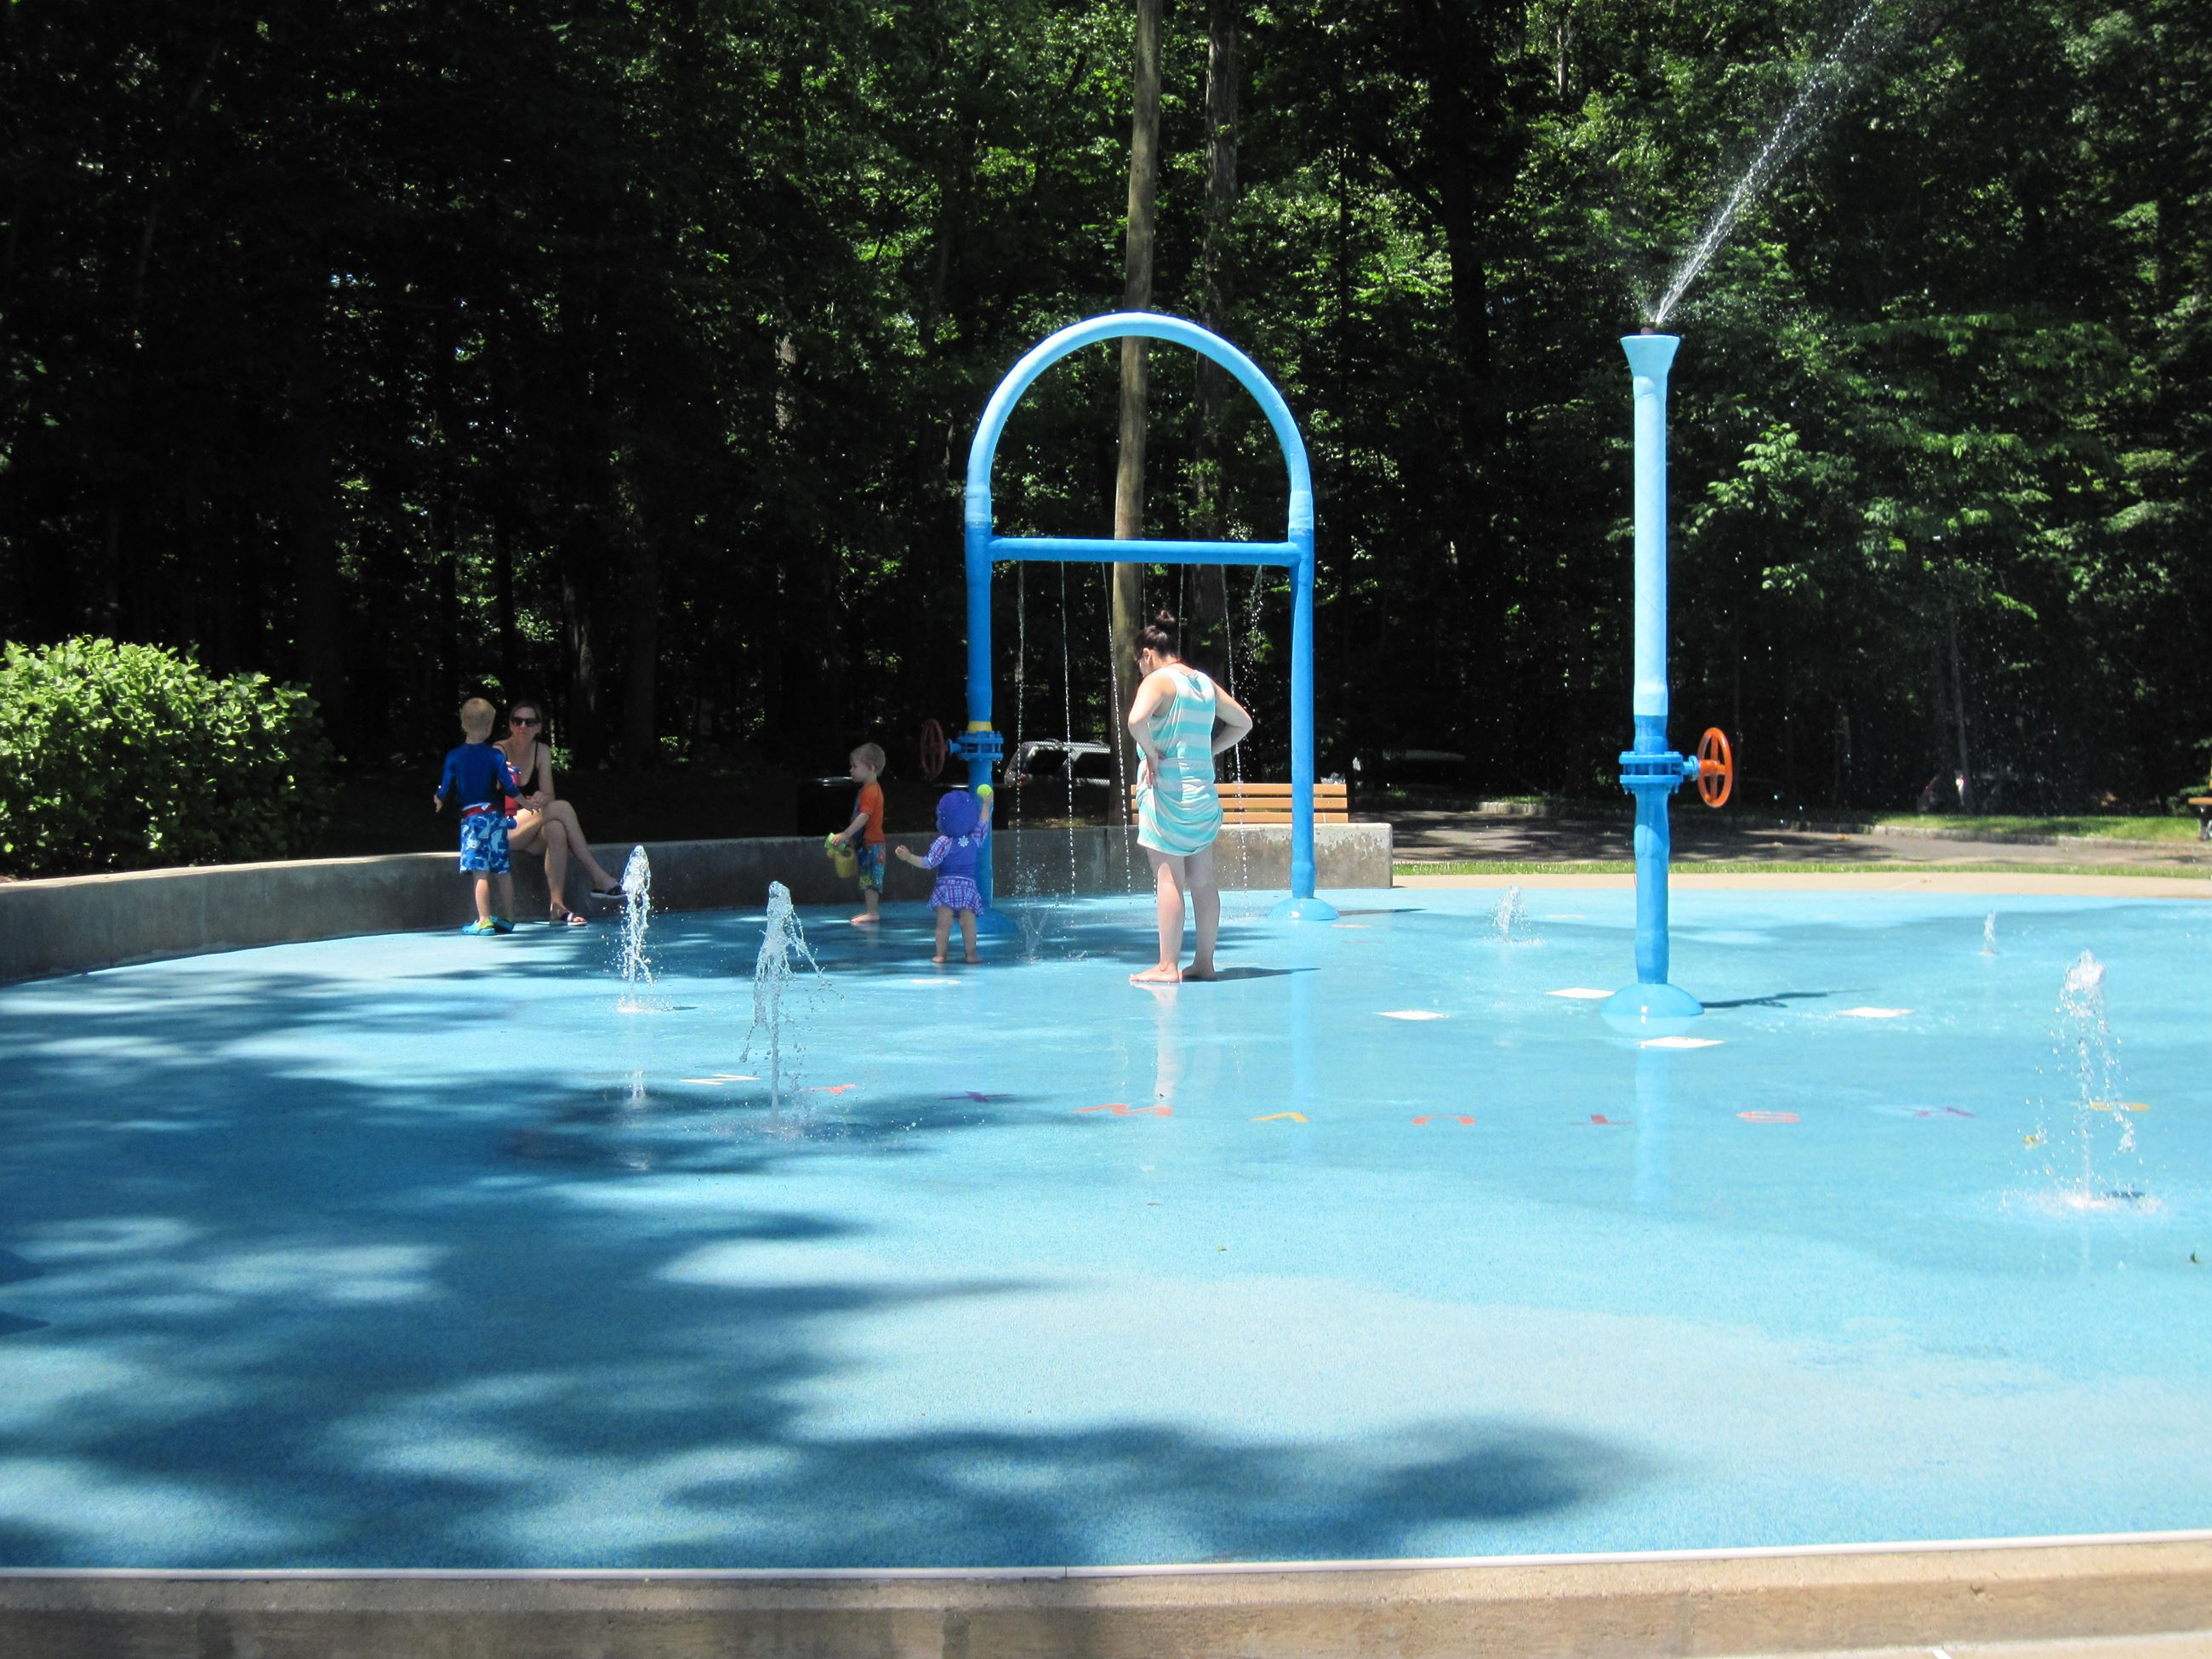 Parents and Children Playing on a Splash Pad